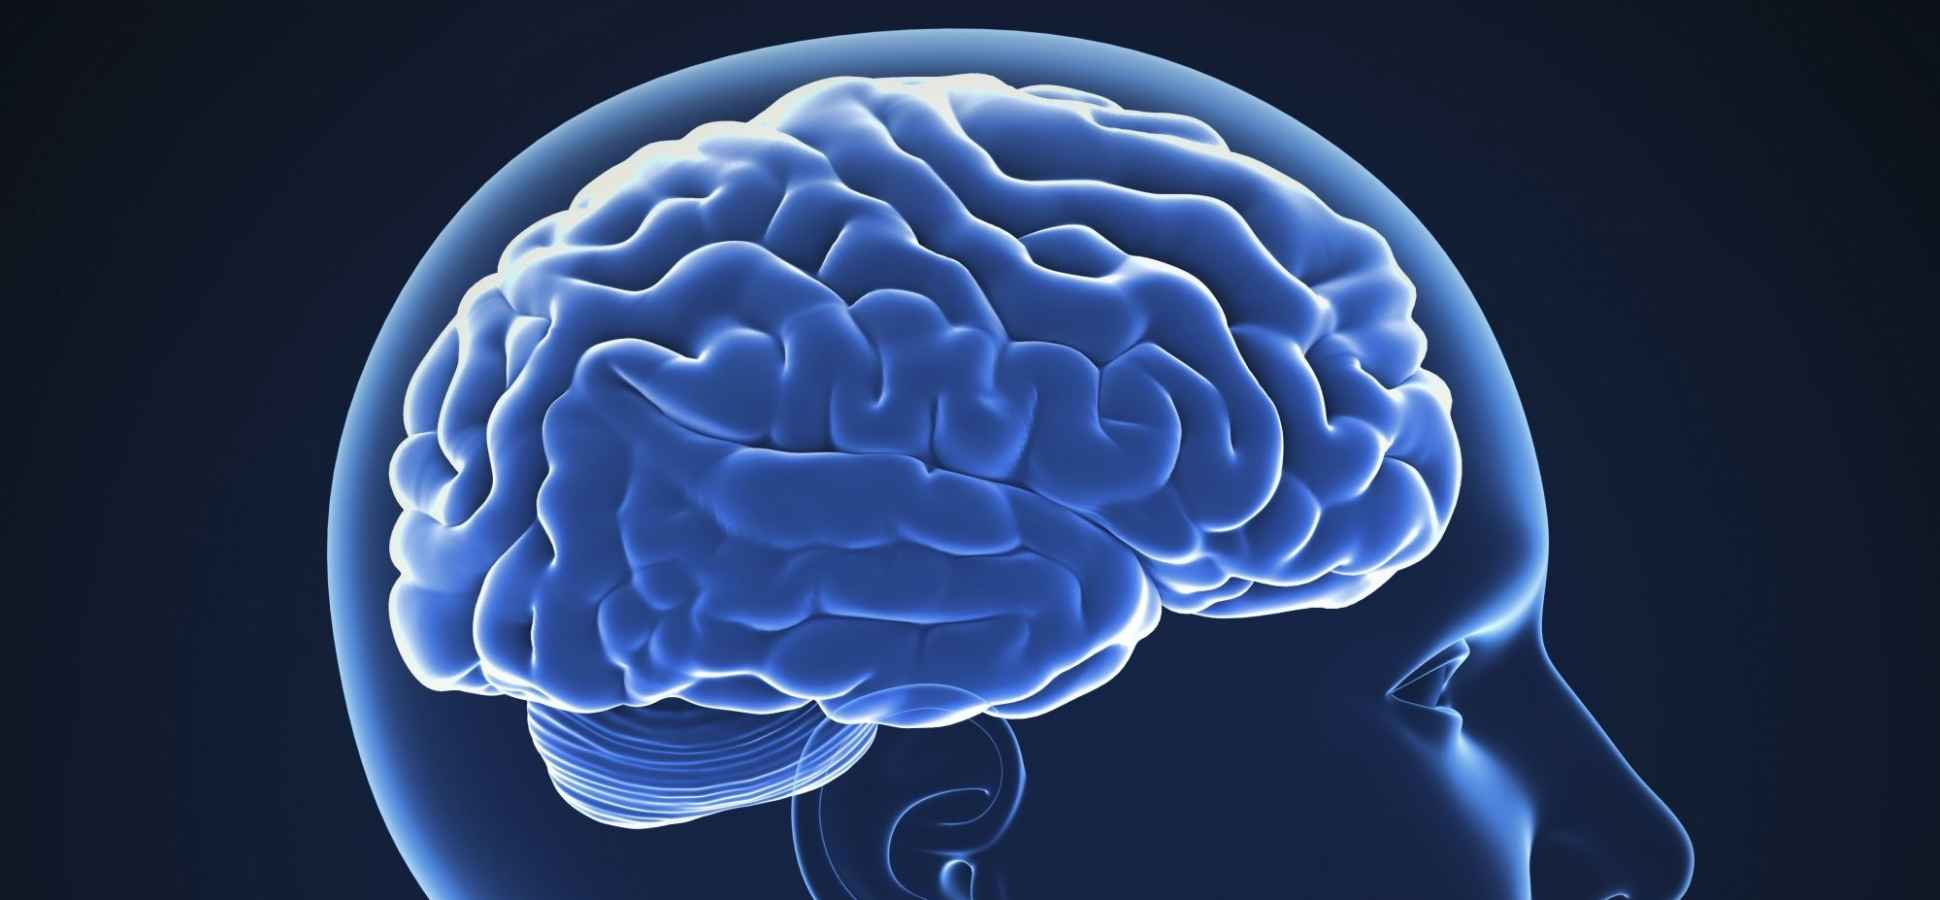 5 Things Smart People Know About Their Brains, According to a Neuroscientist